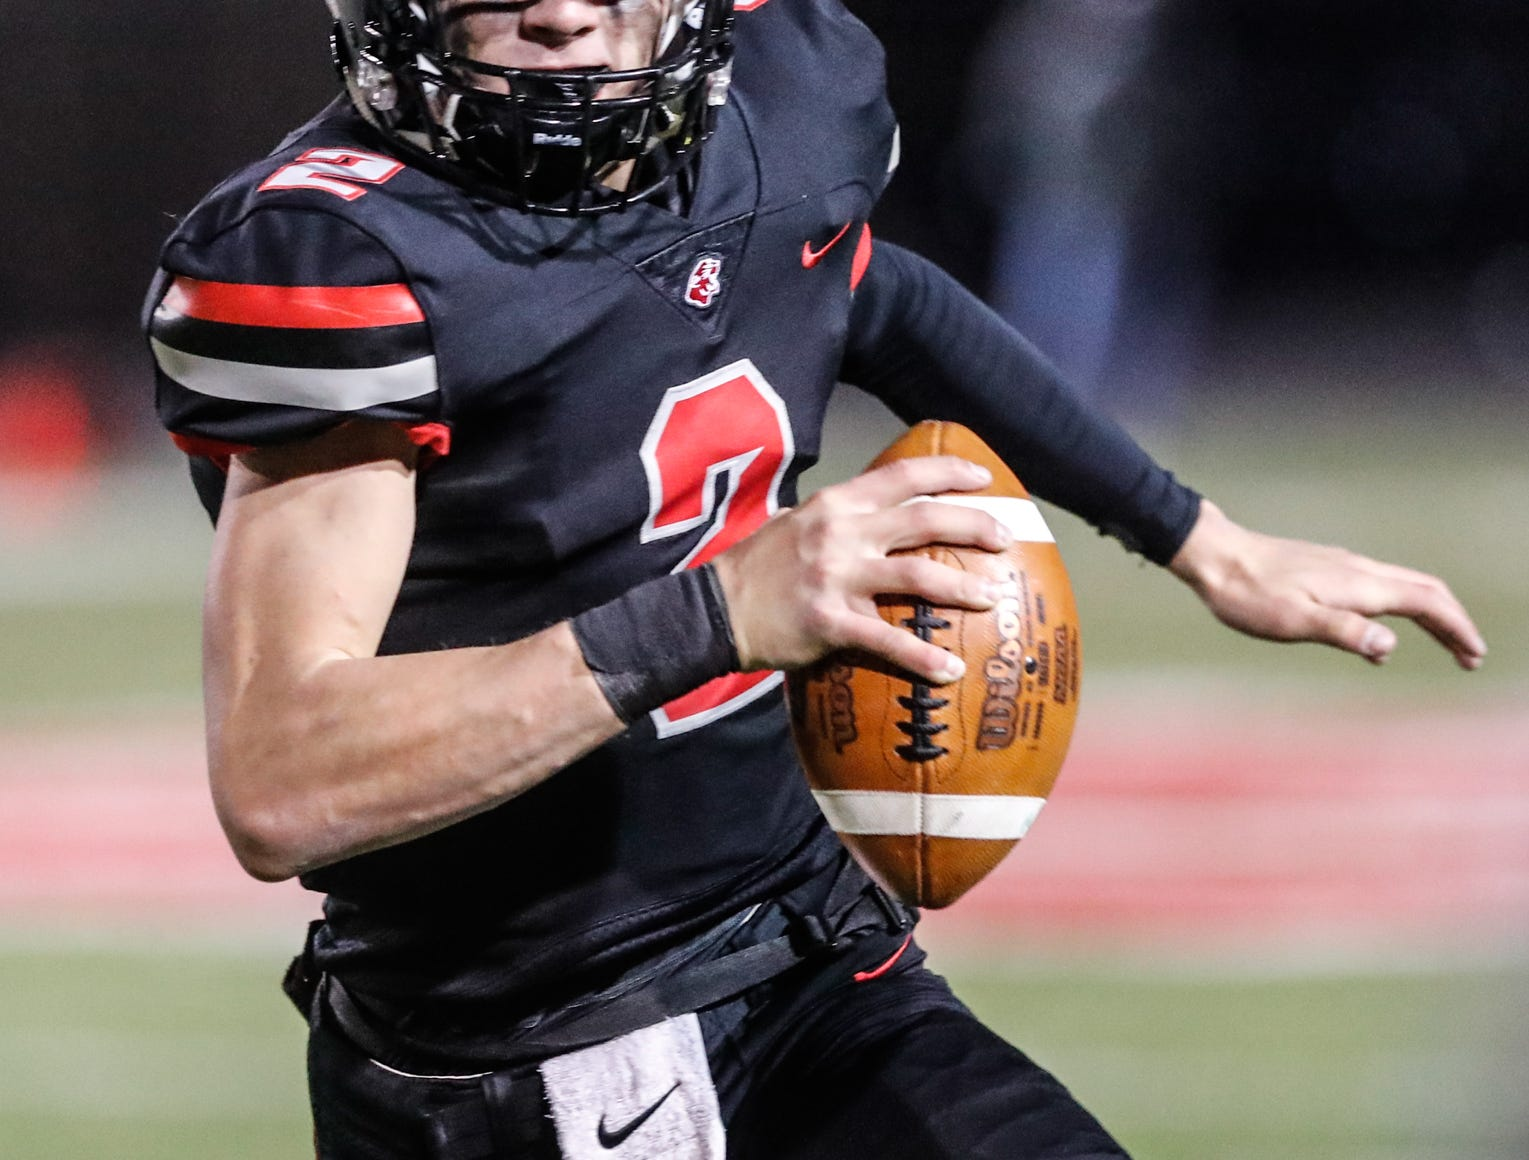 North Central High School Panther's Liam Thompson (2), runs the ball during a regional finals game against the Warren Central High School Warriors at North Central High School on Friday, Nov. 9, 2018.